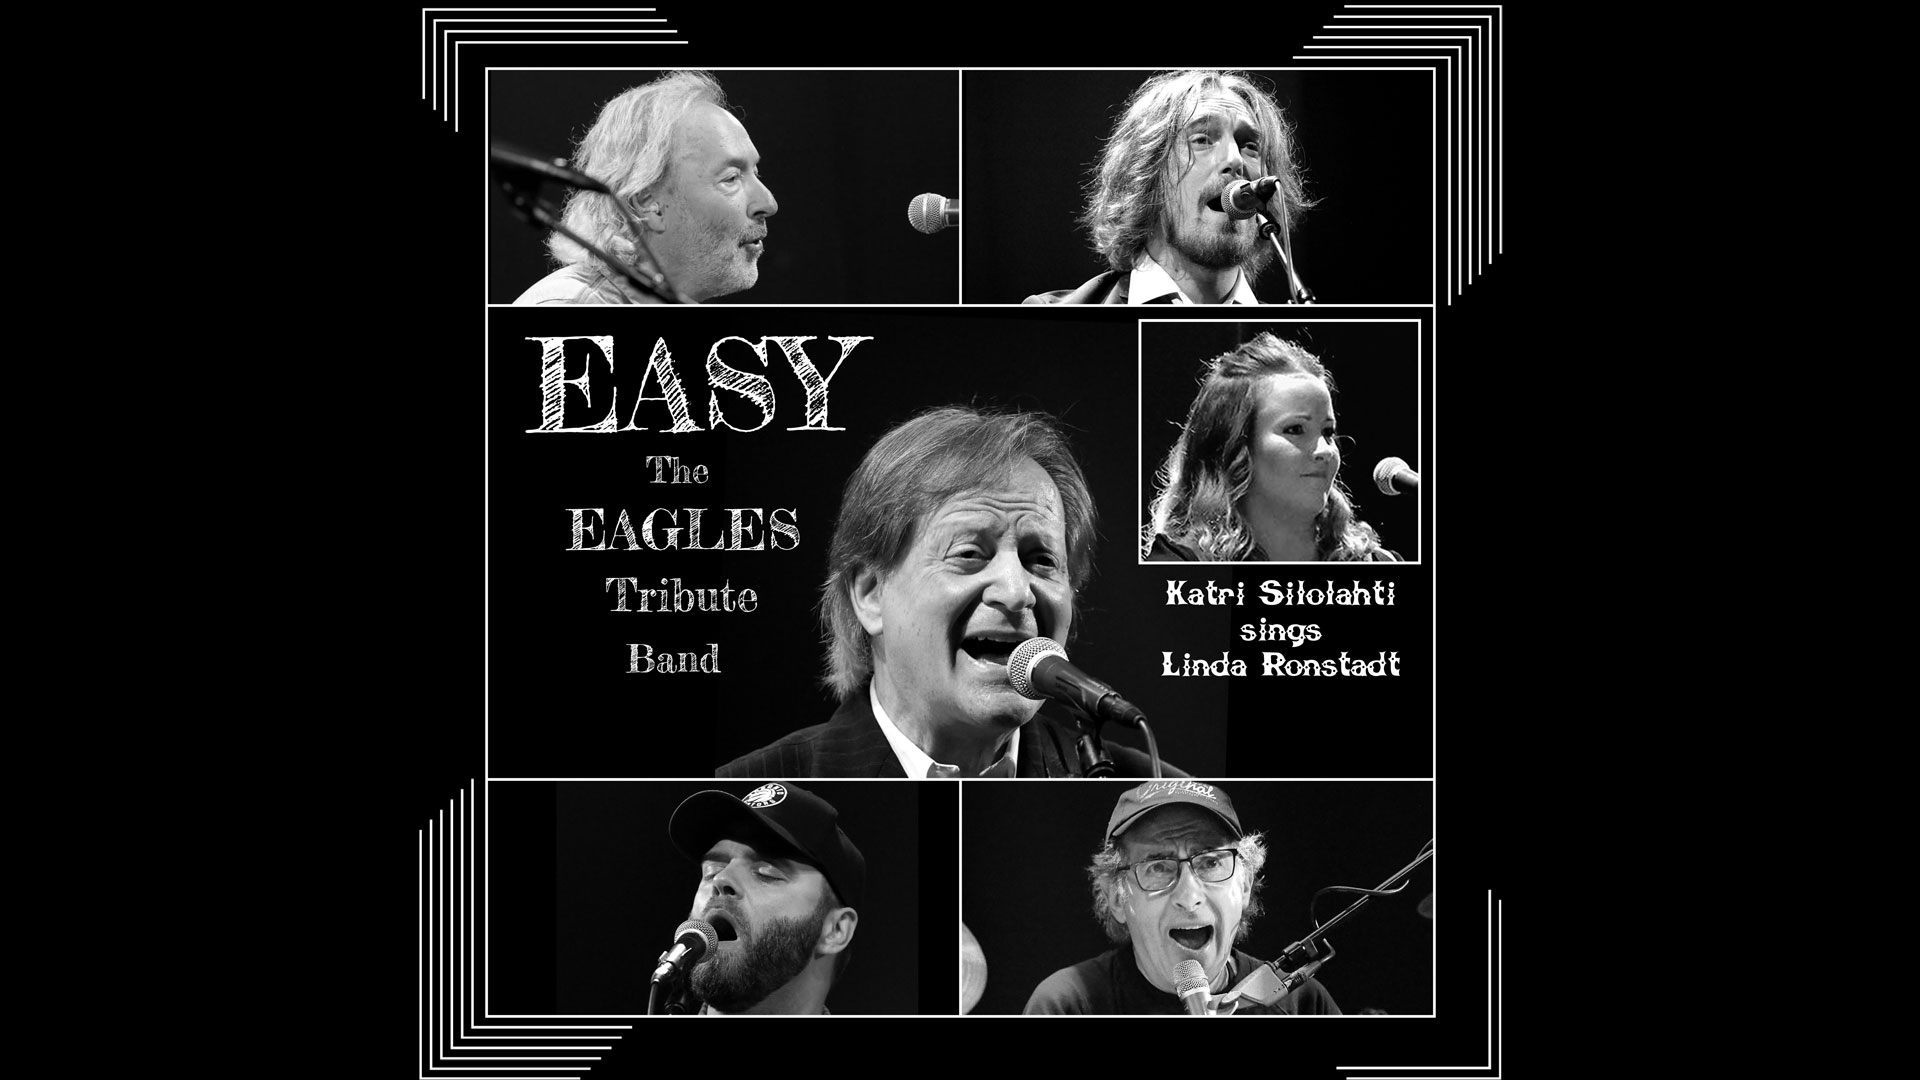 Easy - The Eagles Tribute Band ke 19.5.2021 klo 19.00